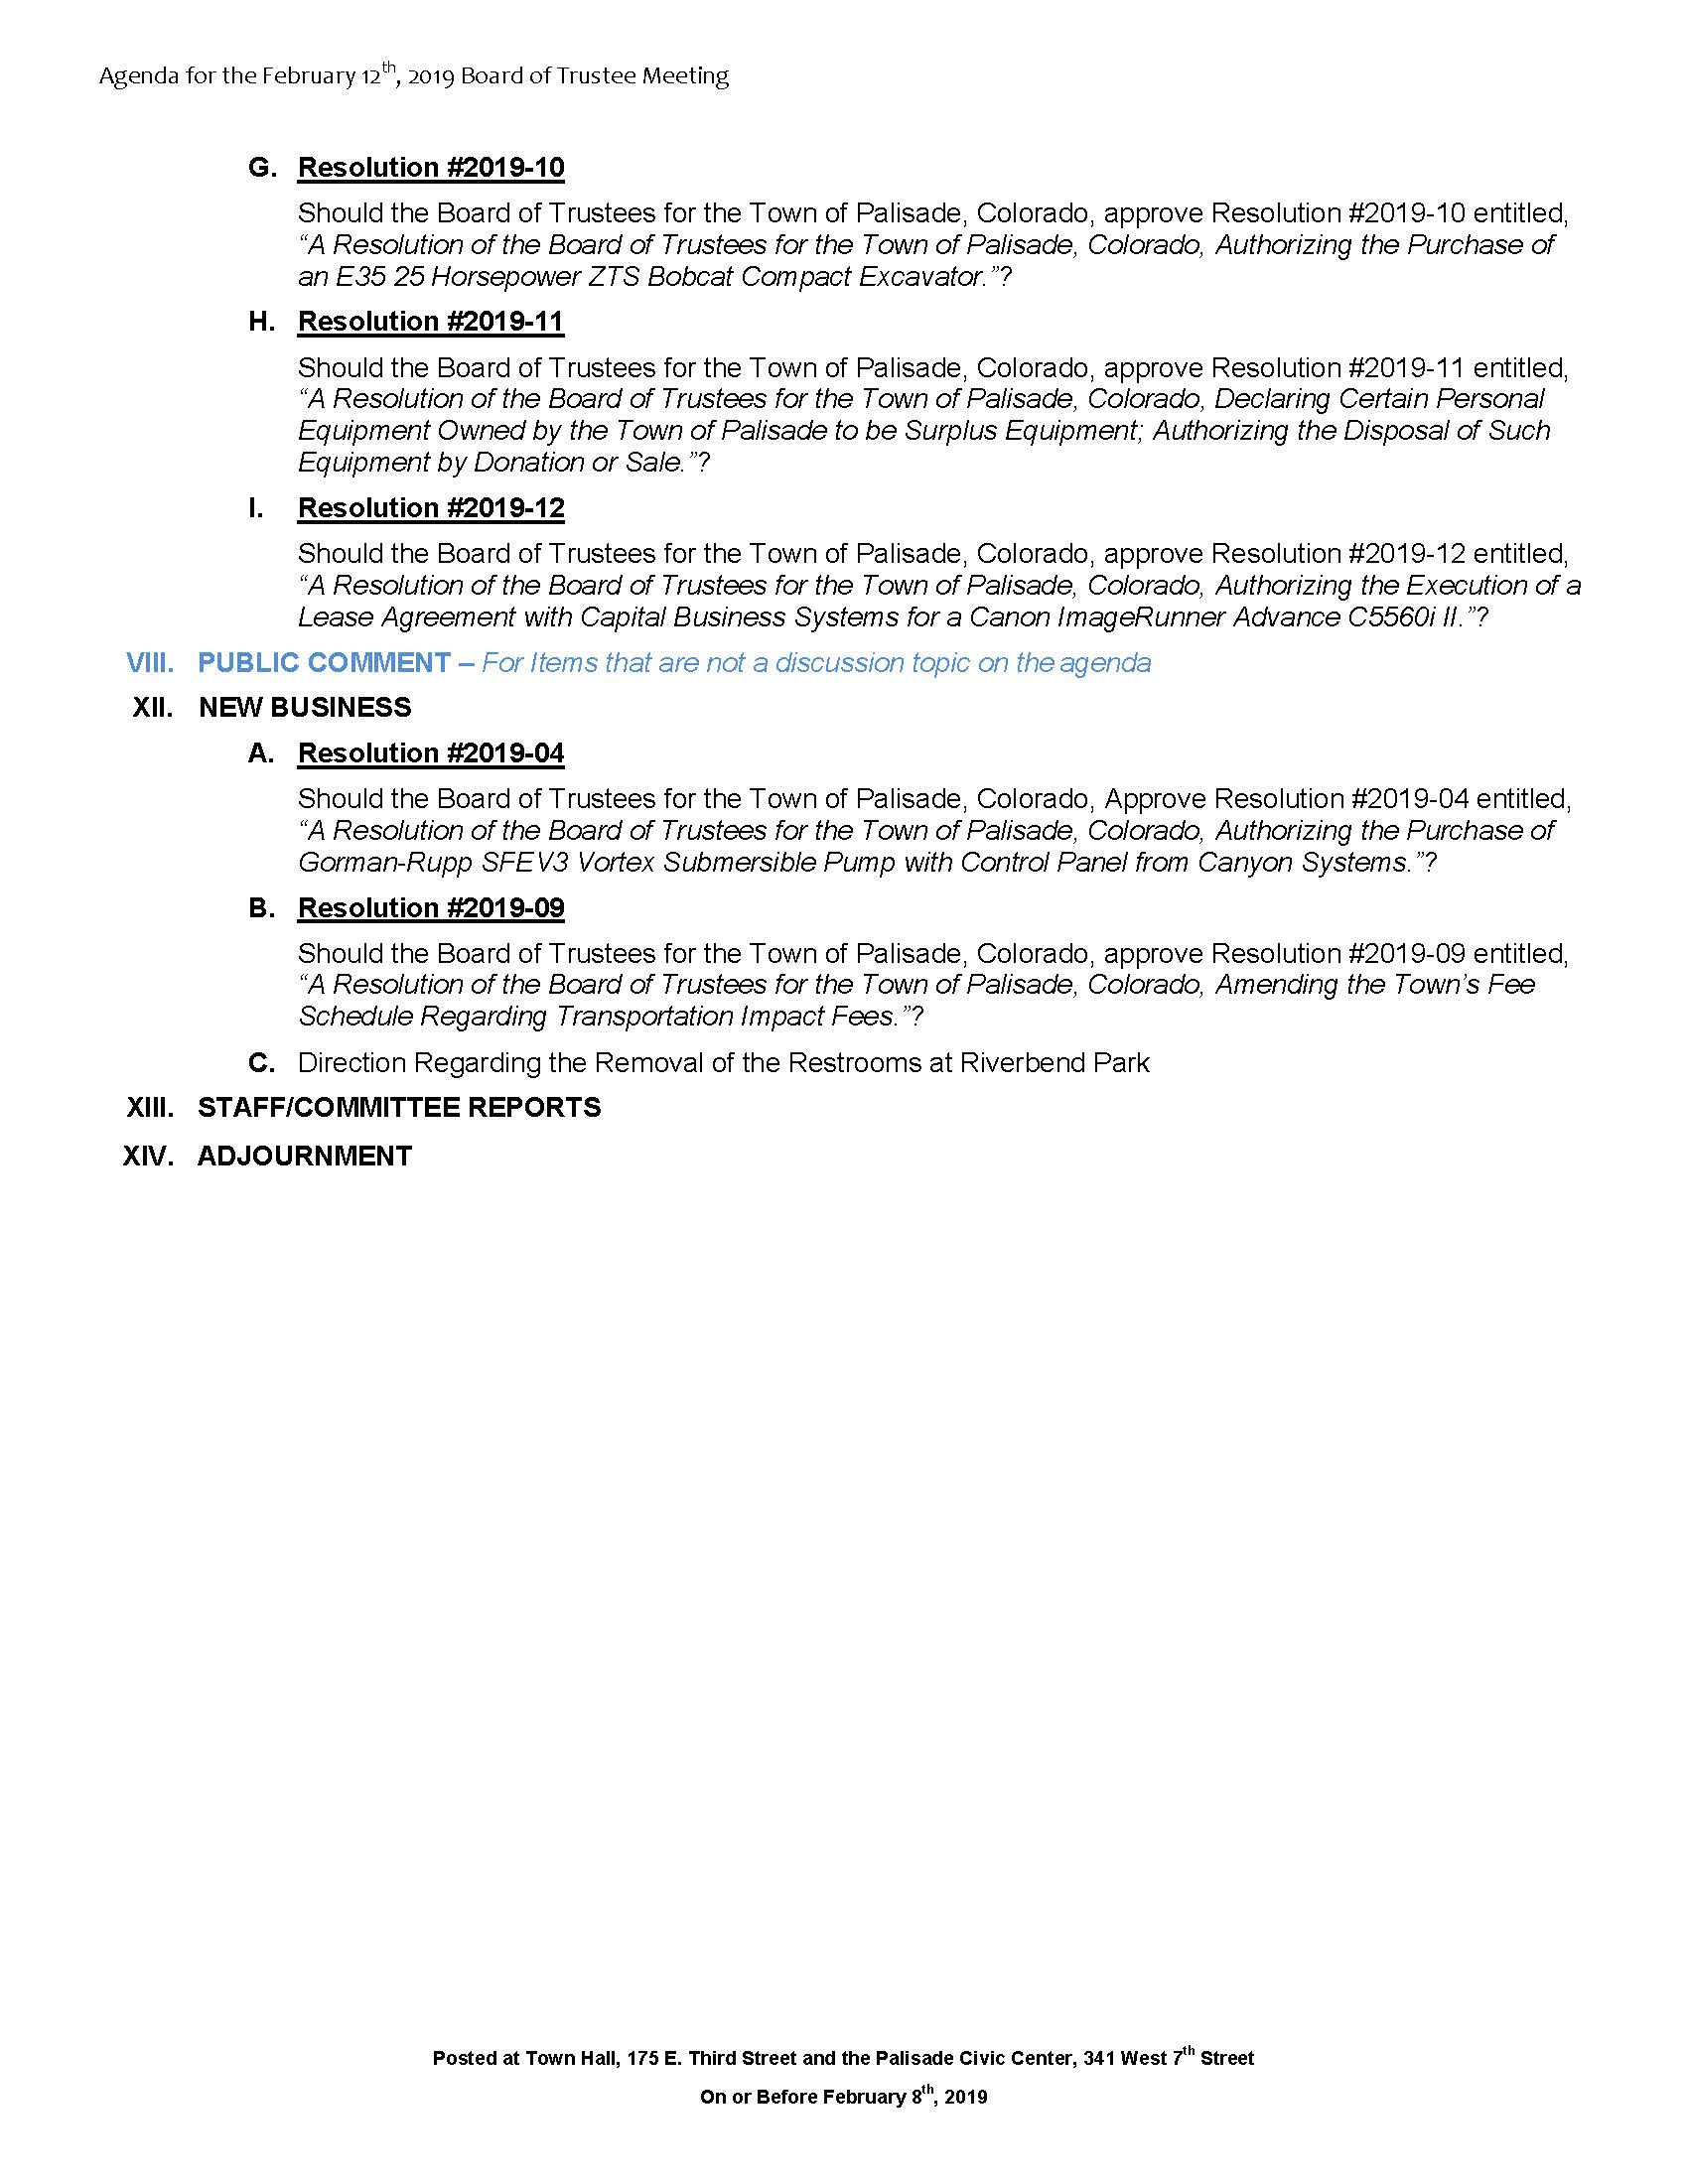 February 12th 2019 Board Meeting Agenda Page 2